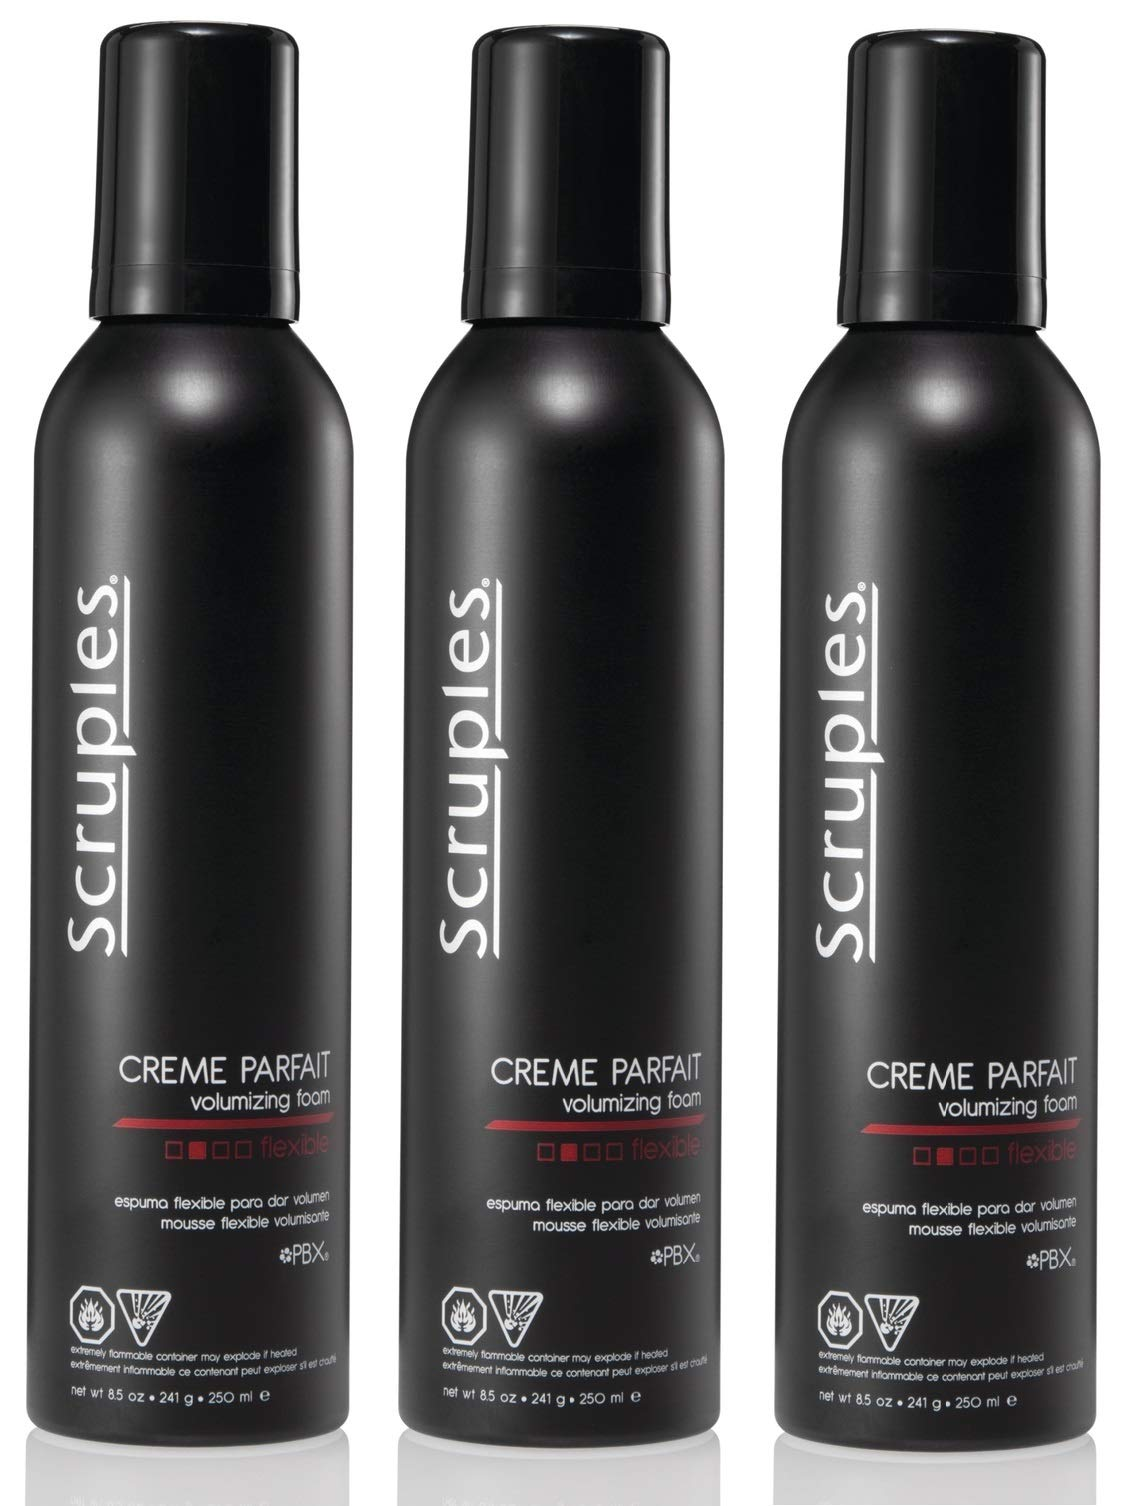 Scruples Creme Parfait Volumizing Foam (8.5 fl oz / 250 ml) - Hair Thickening Mousse for Men & Women - Alcohol Free & Lightweight - Hair Styling Mousse for Fine & Thin Hair - Pack of 3